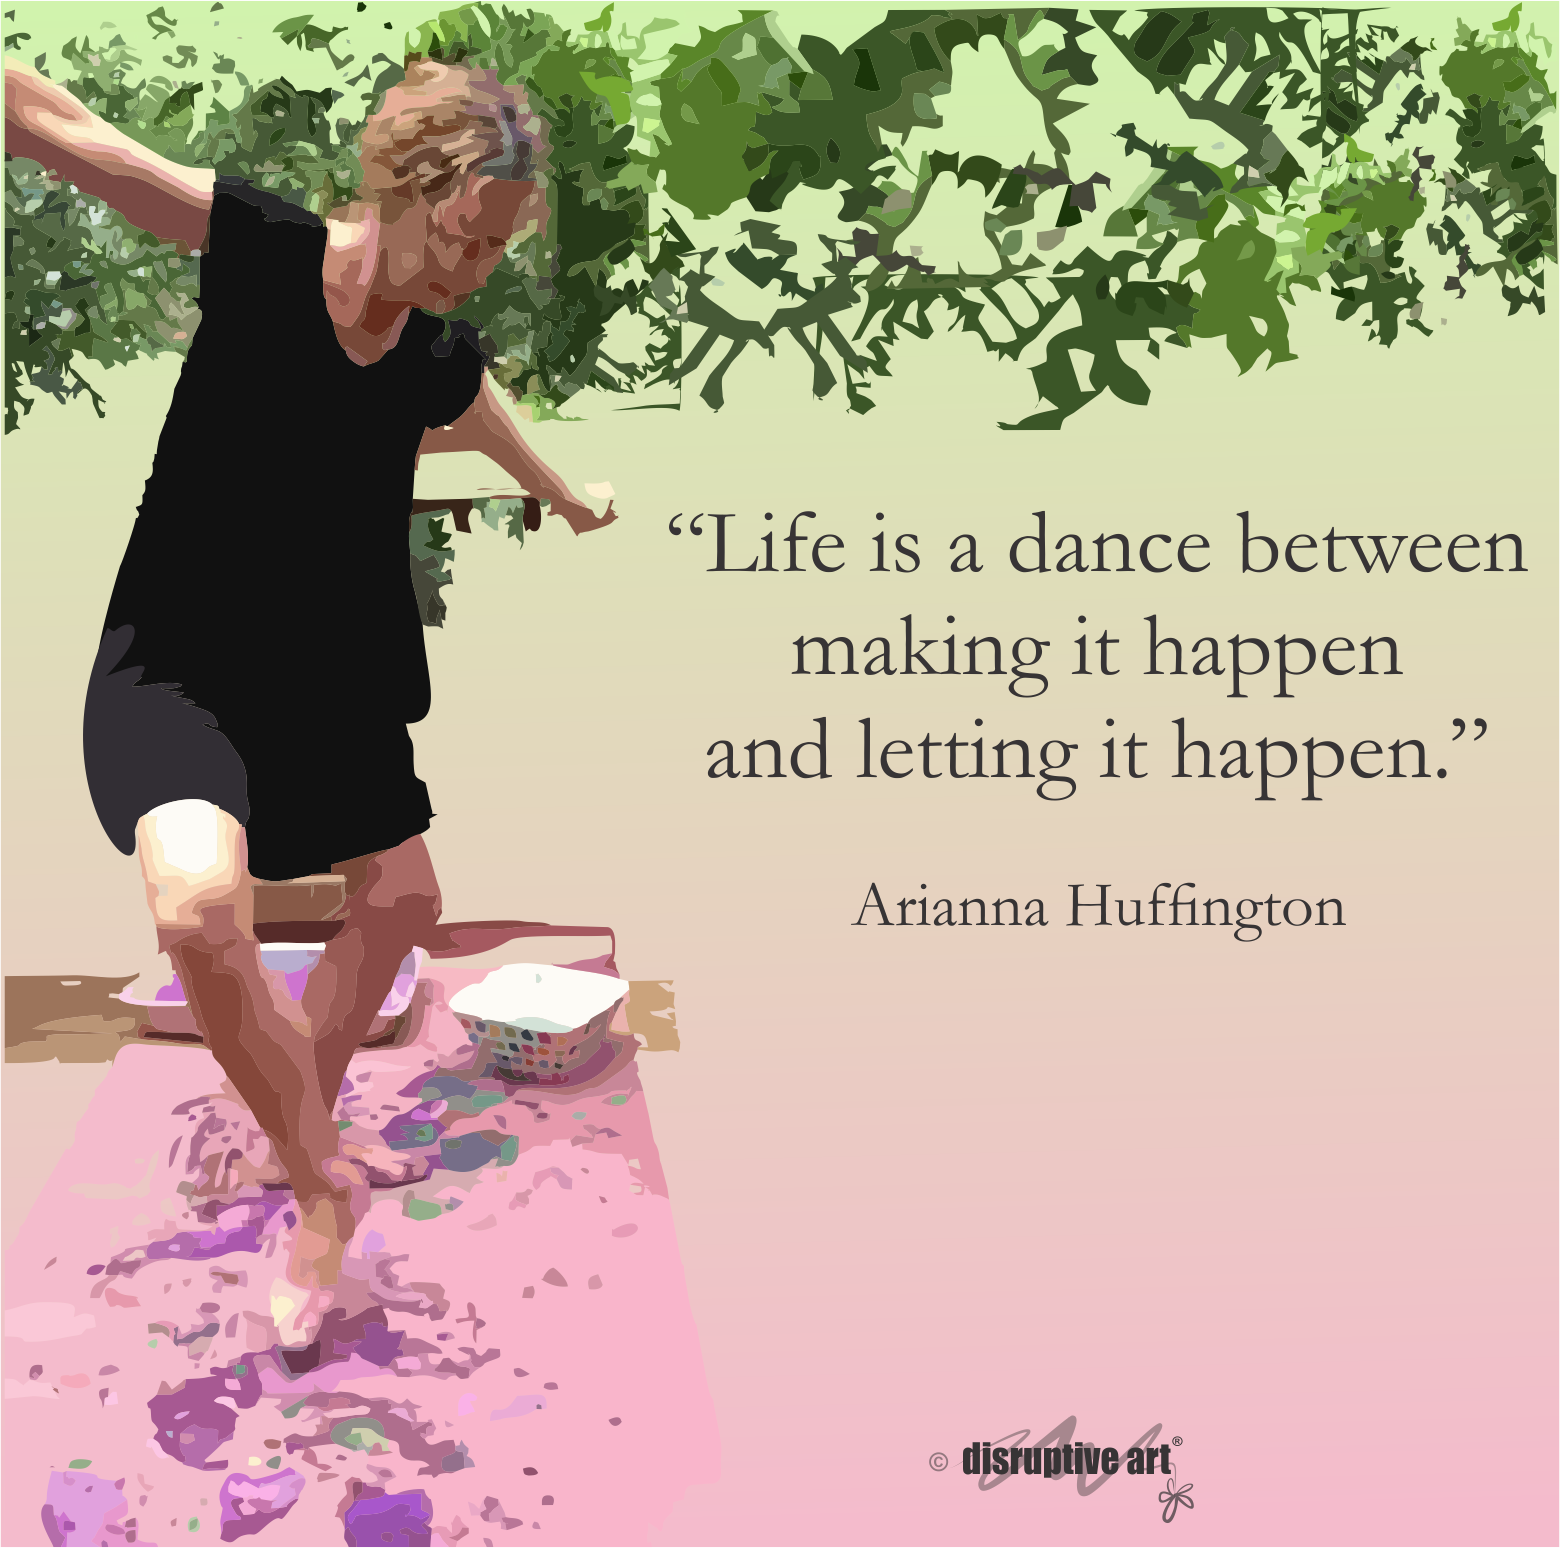 Life is a Dance! Full collection to be launched during CATA's 2020 Conference!